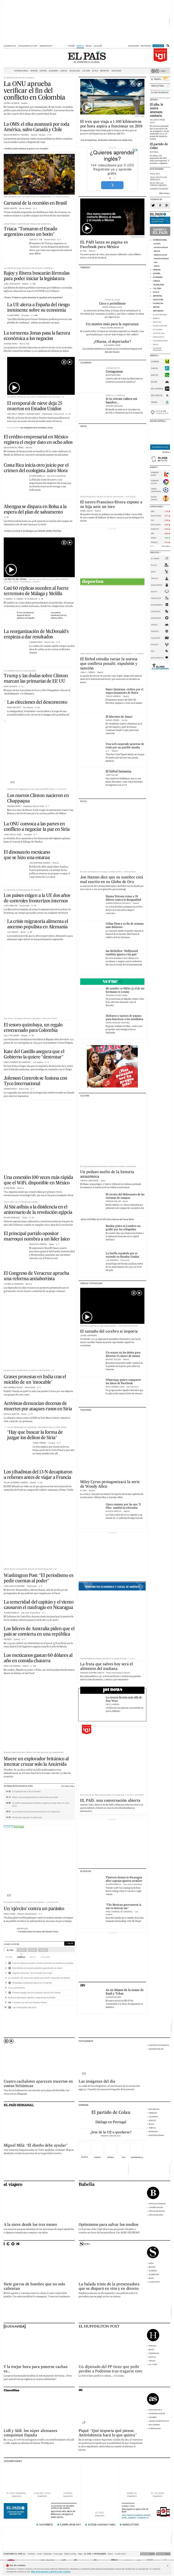 El Pais at Tuesday Jan. 26, 2016, 1:16 a.m. UTC